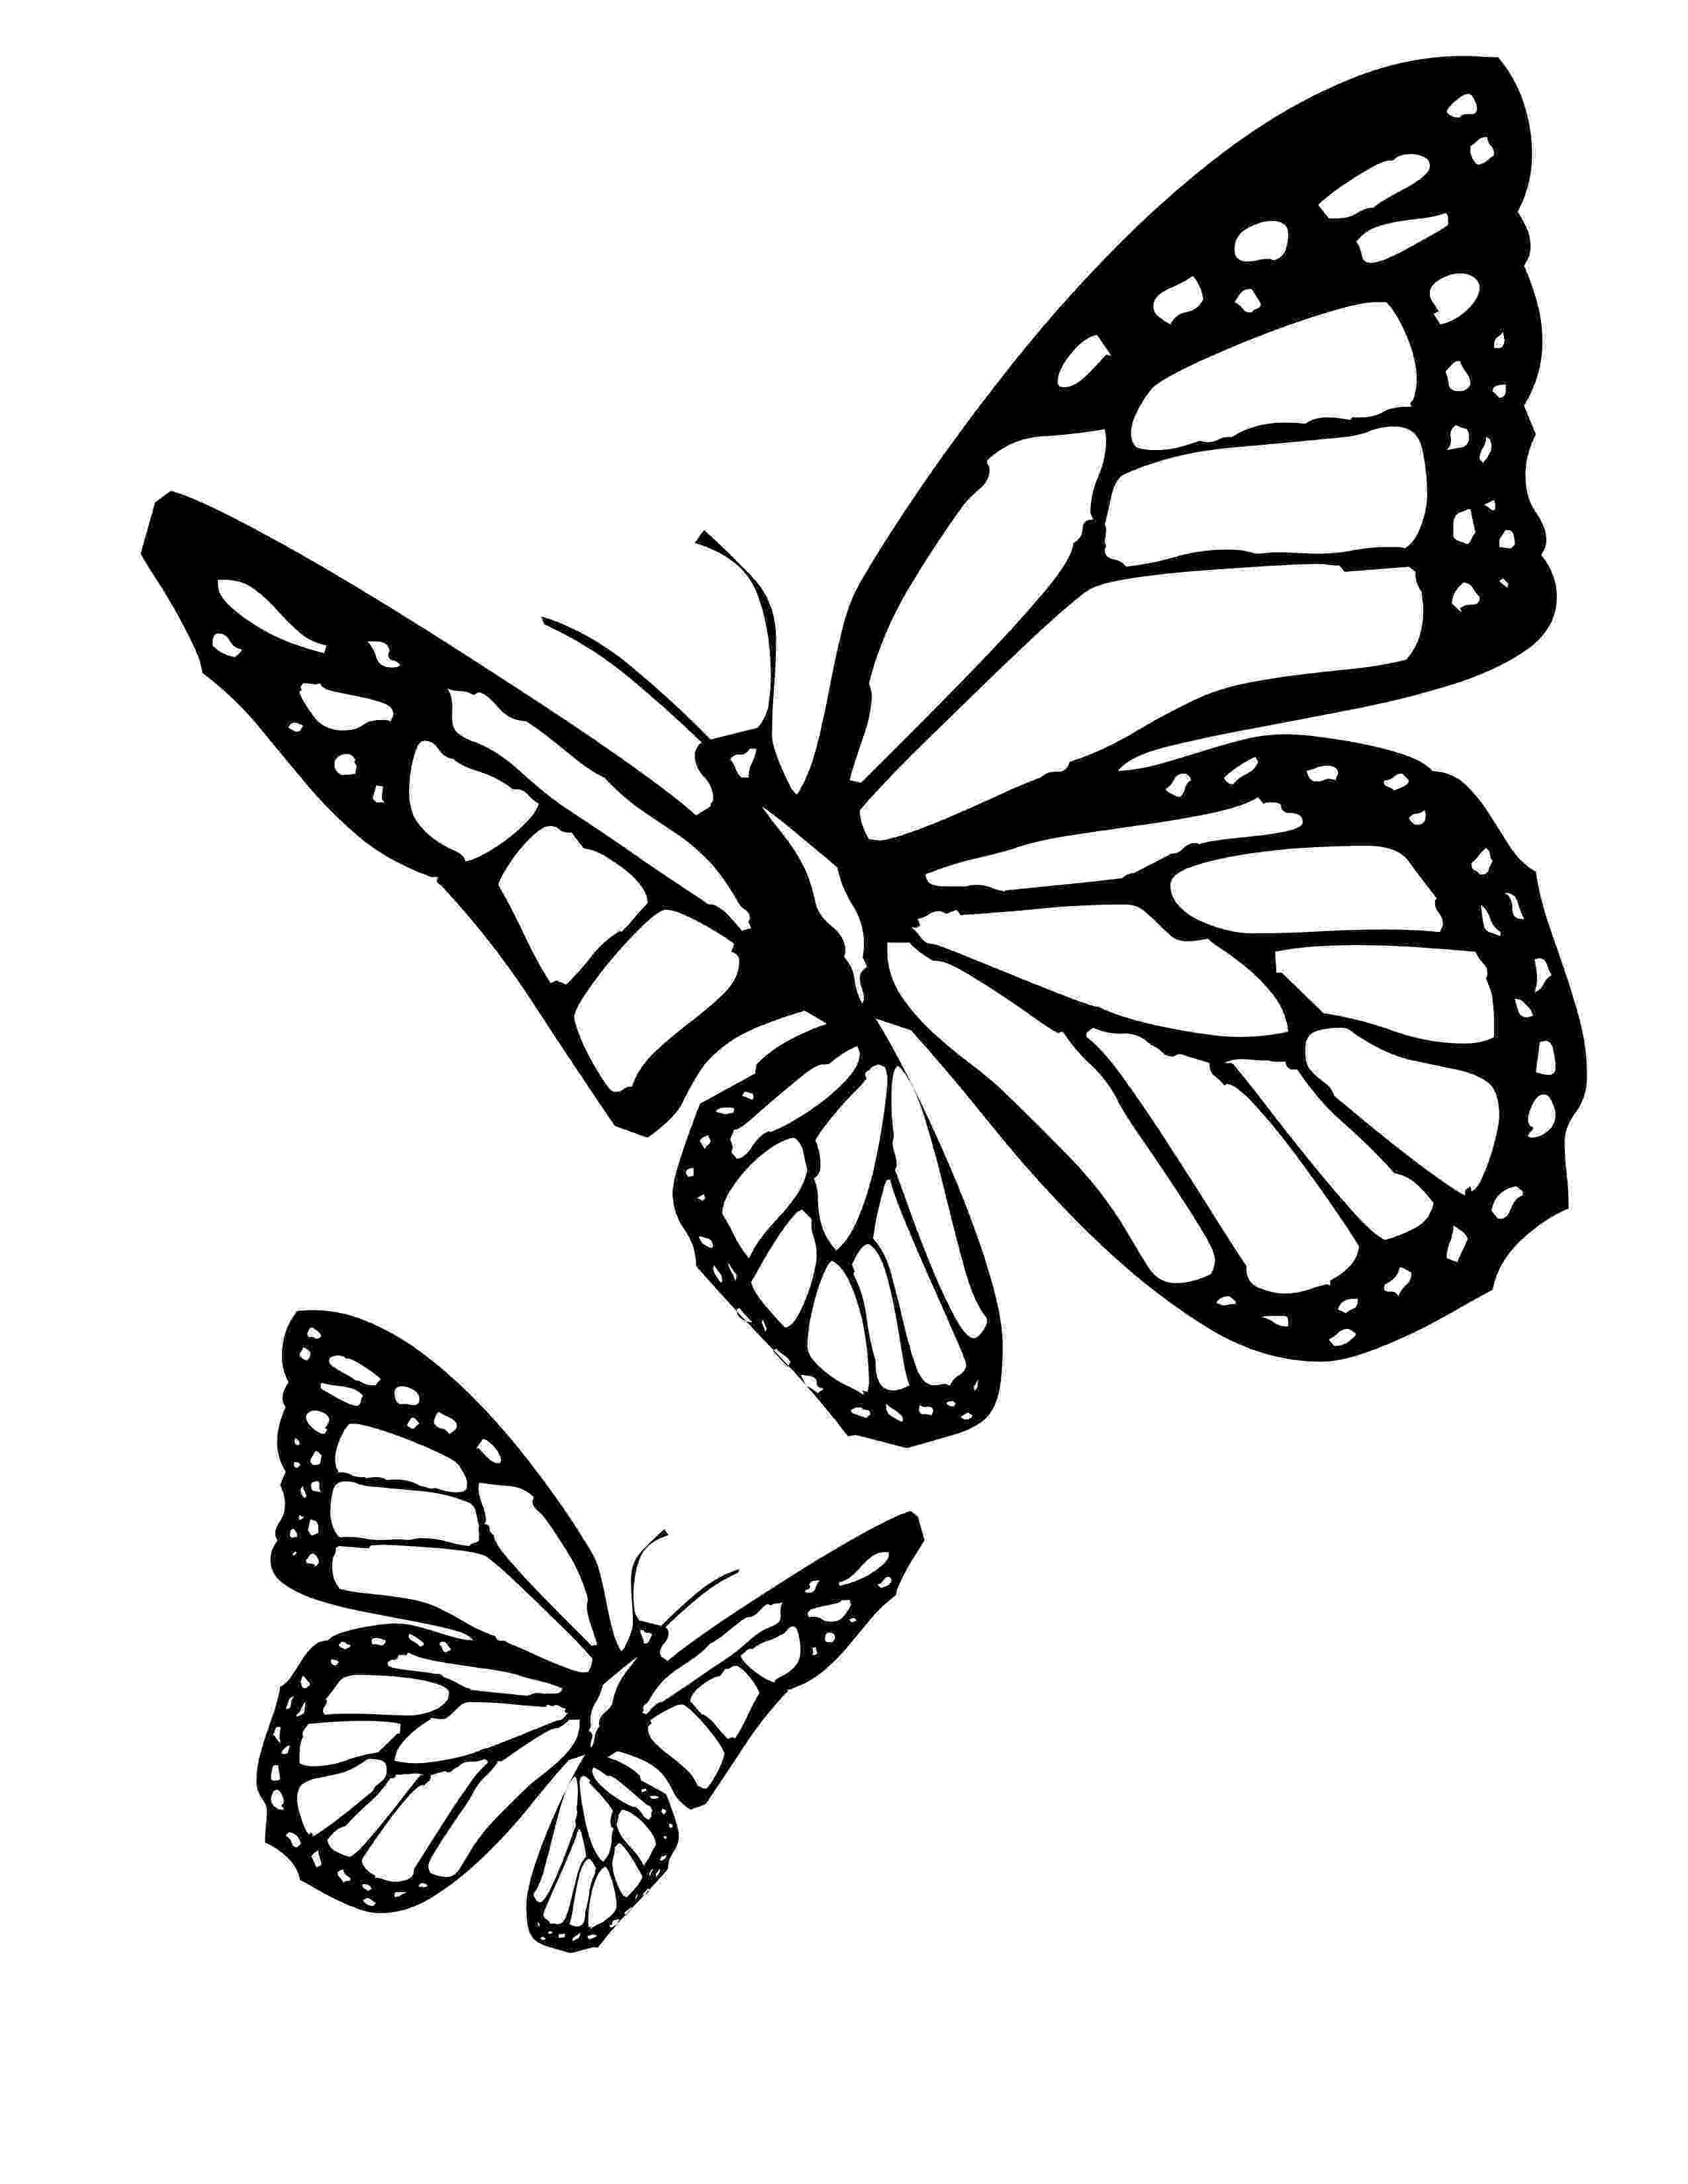 monarch butterfly coloring pages butterfly butterfly adult coloring page butterfly pages butterfly monarch coloring